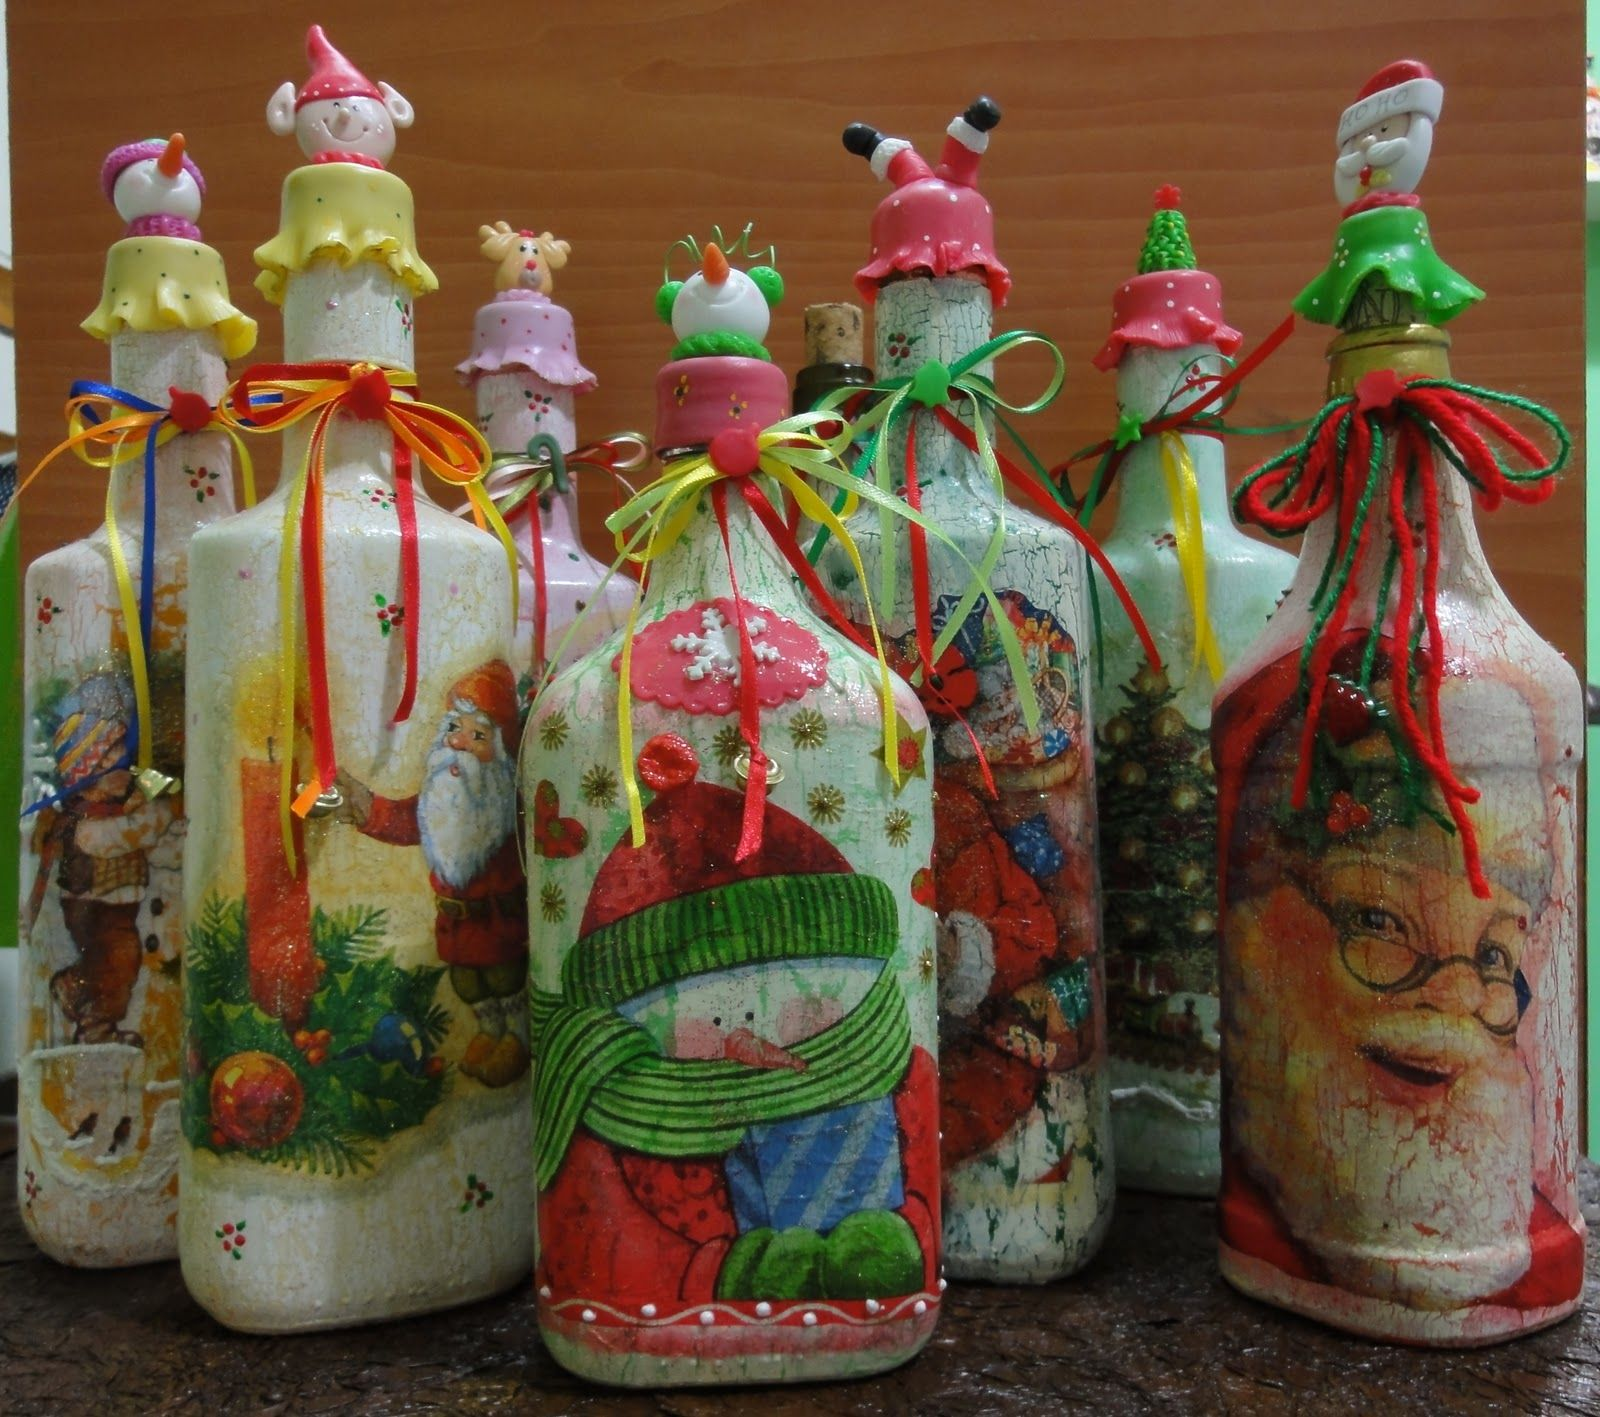 Botellas Decoradas Navideñas Botellas Navideñas Decoradas Buscar Con Google